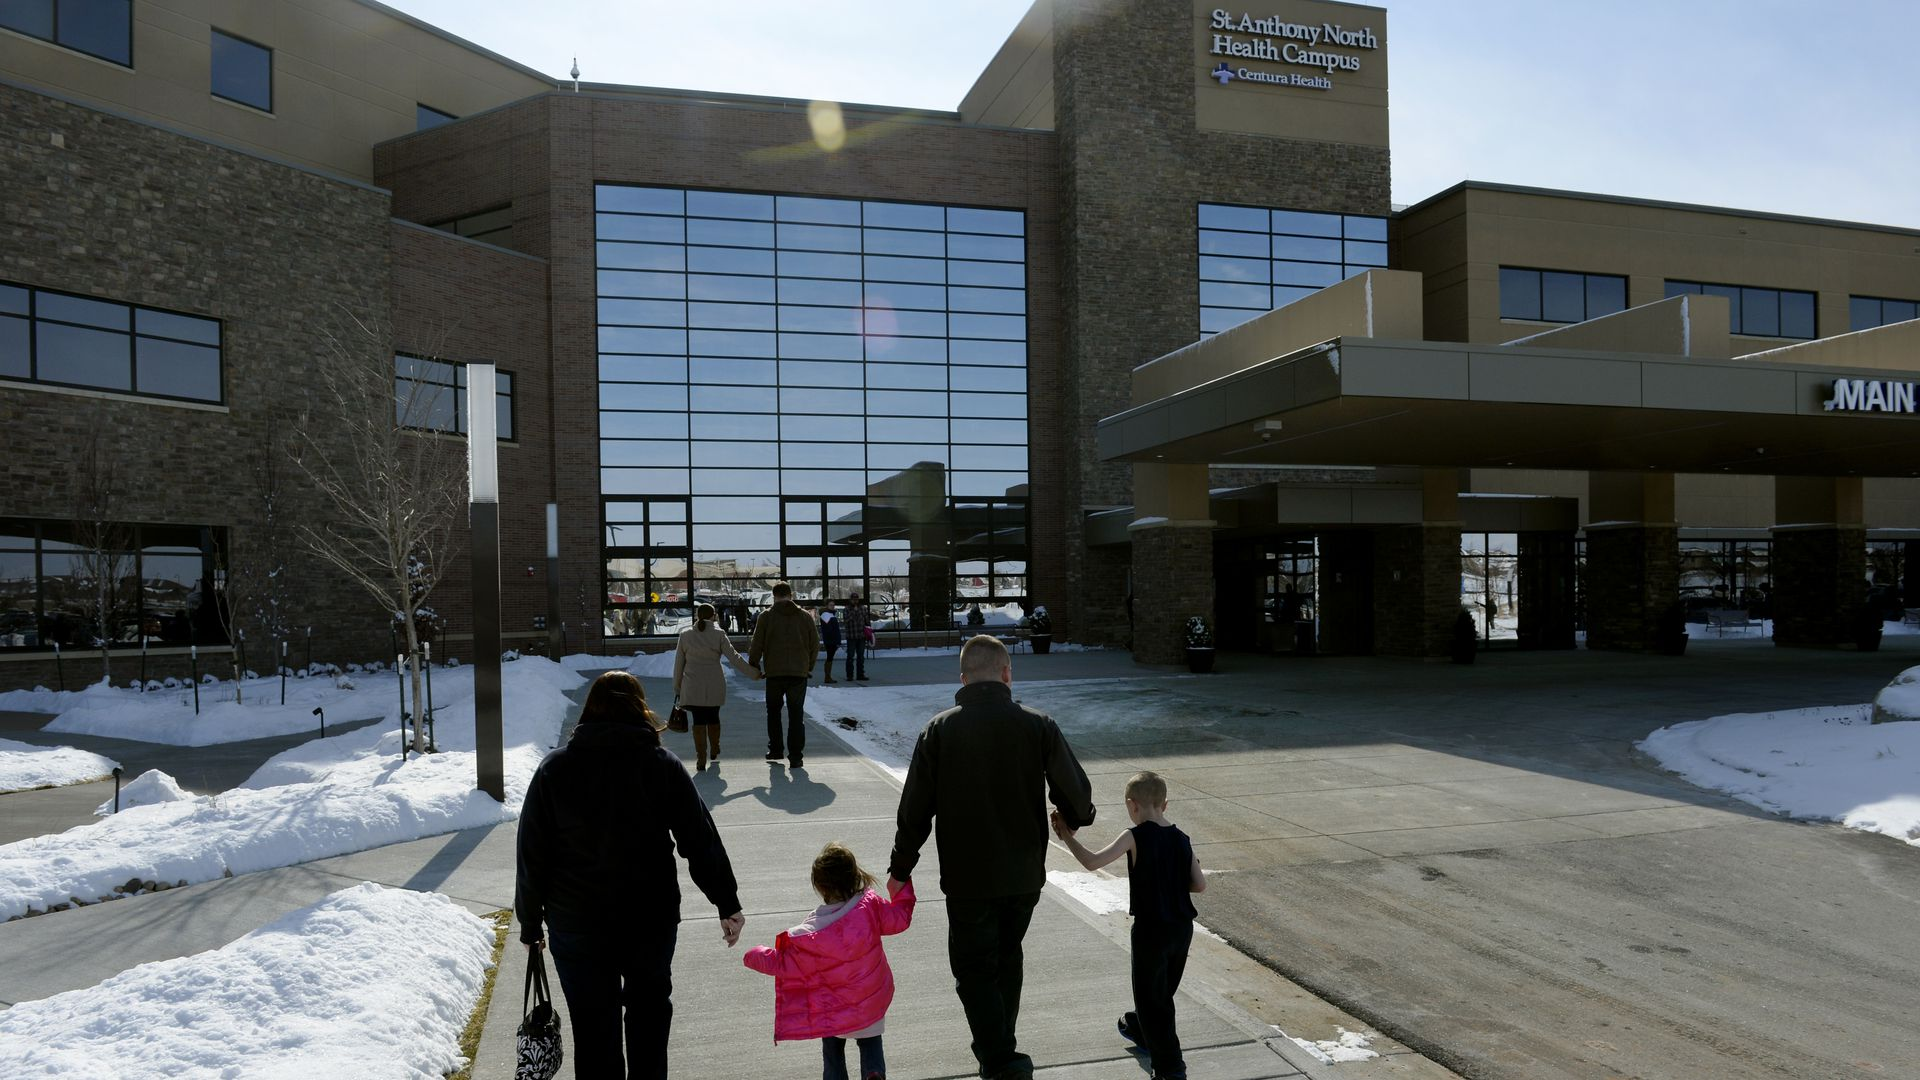 A family walks into the St. Anthony North Hospital in Colorado.